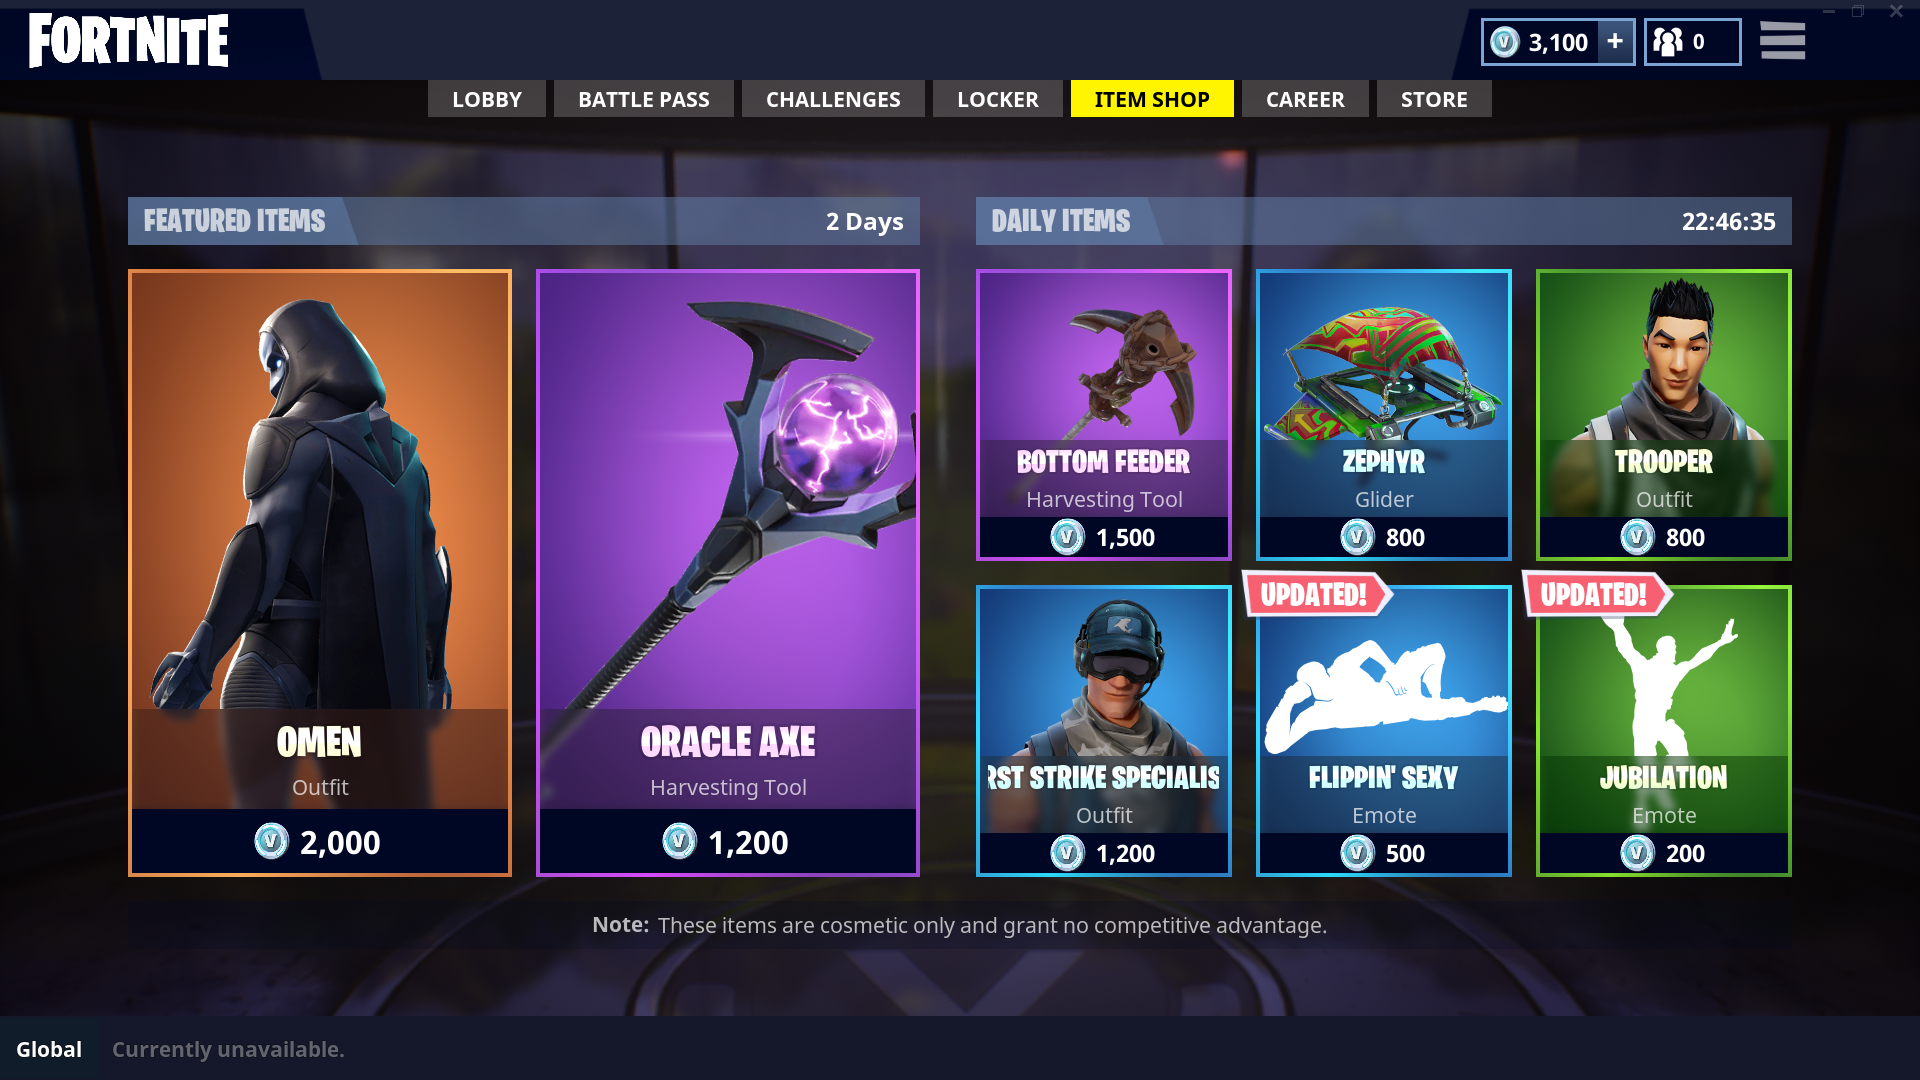 Fortnite Omen Skin Added To Item Shop Be The Hero Tilted Towers Needs